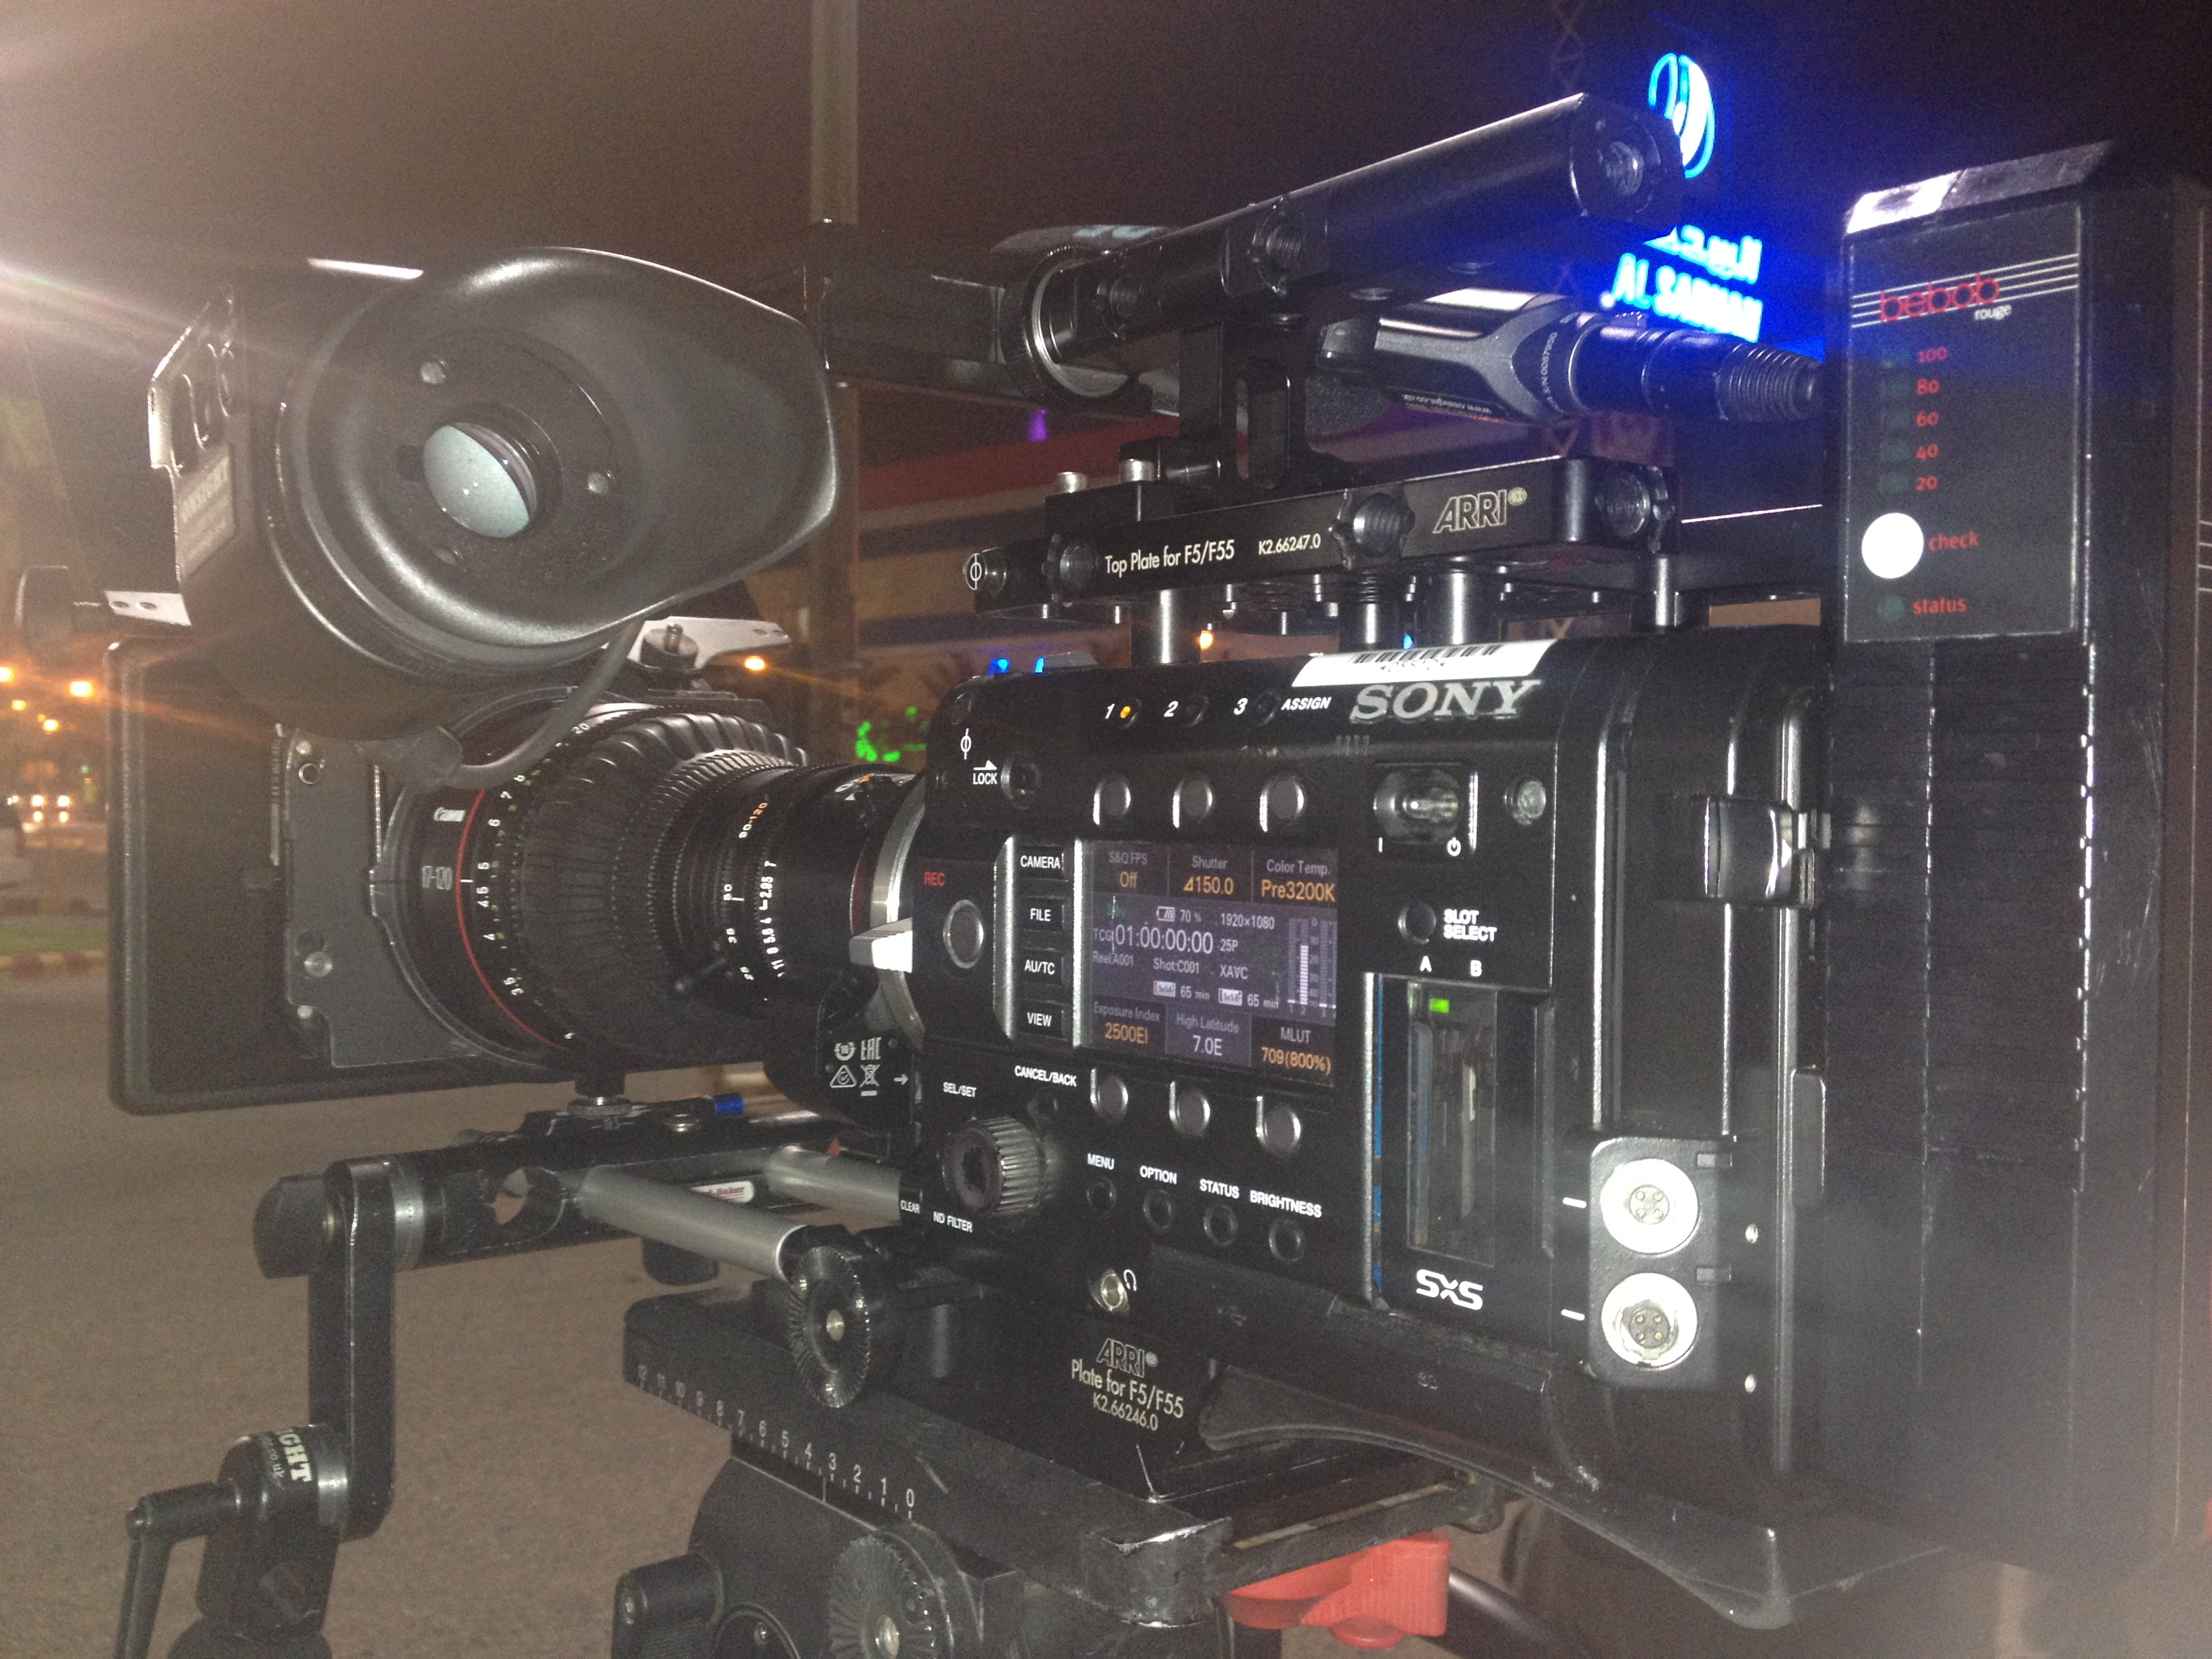 Sony F55 downtown Riyadh